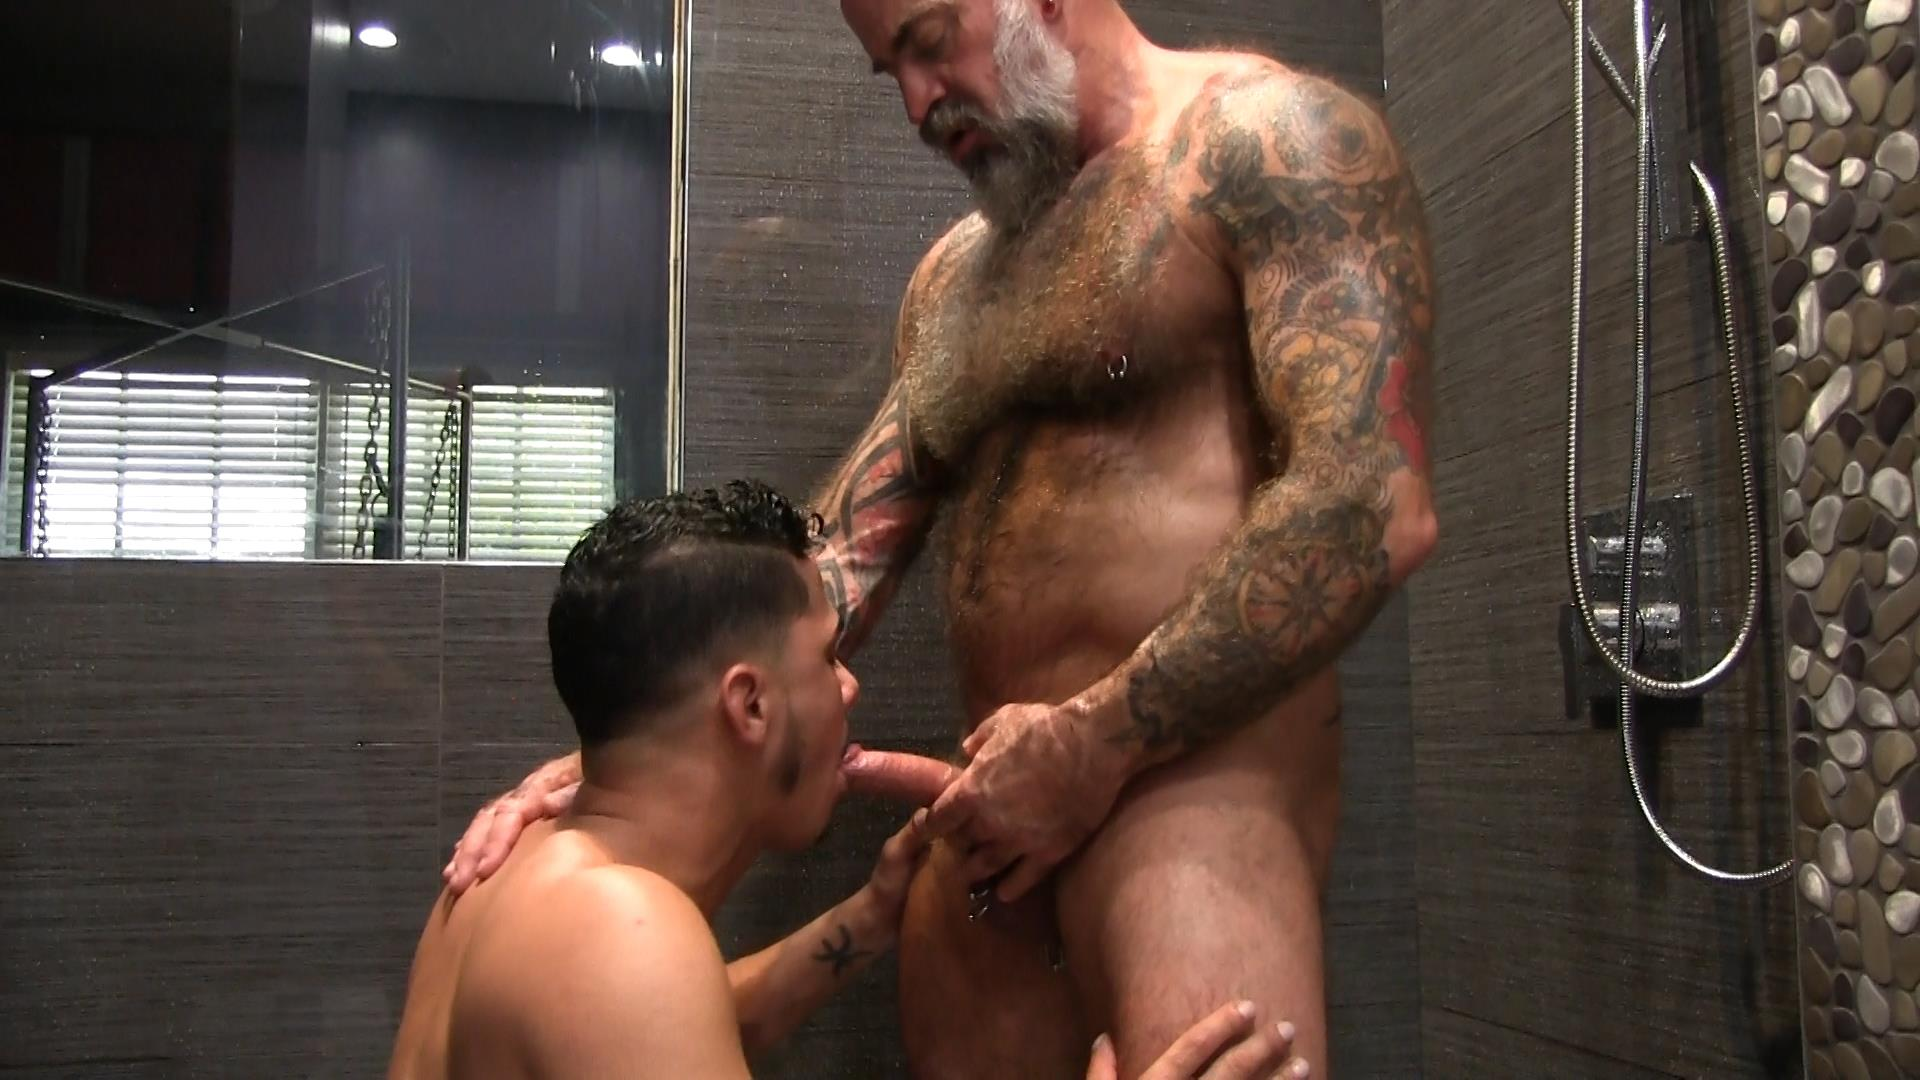 Victor-Cody-XXX-Nate-Pierce-and-Cesar-Xes-Bareback-Bathhouse-Sex-18 Getting Fucked By A Hairy Daddy In The Bathhouse Shower